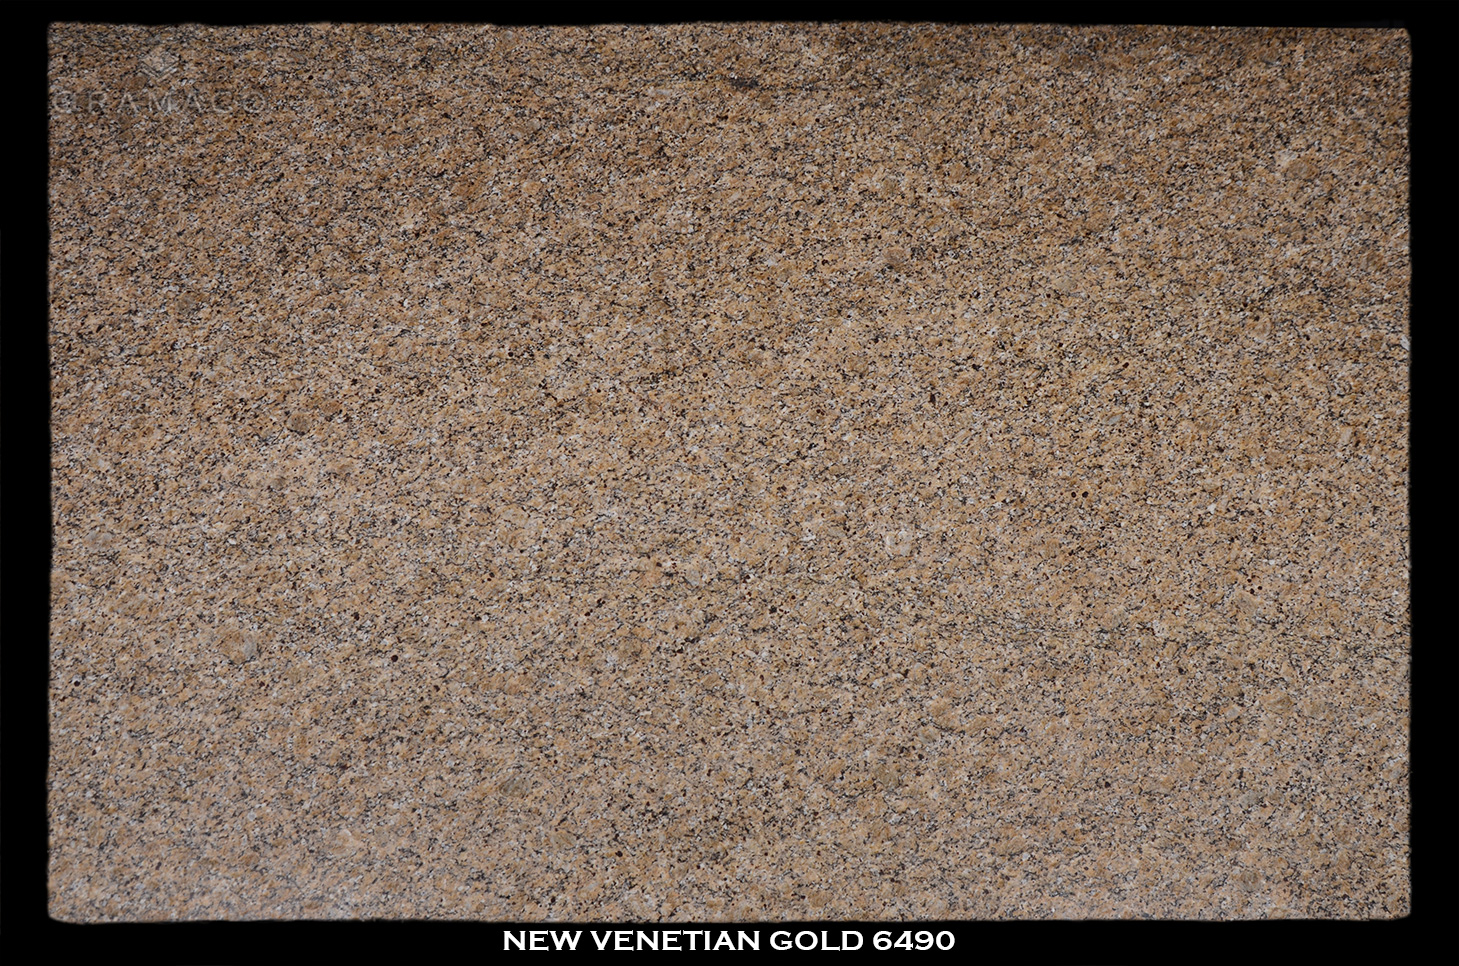 NEW-VENETIAN-GOLD-6490---FULL-SLAB-BLACK